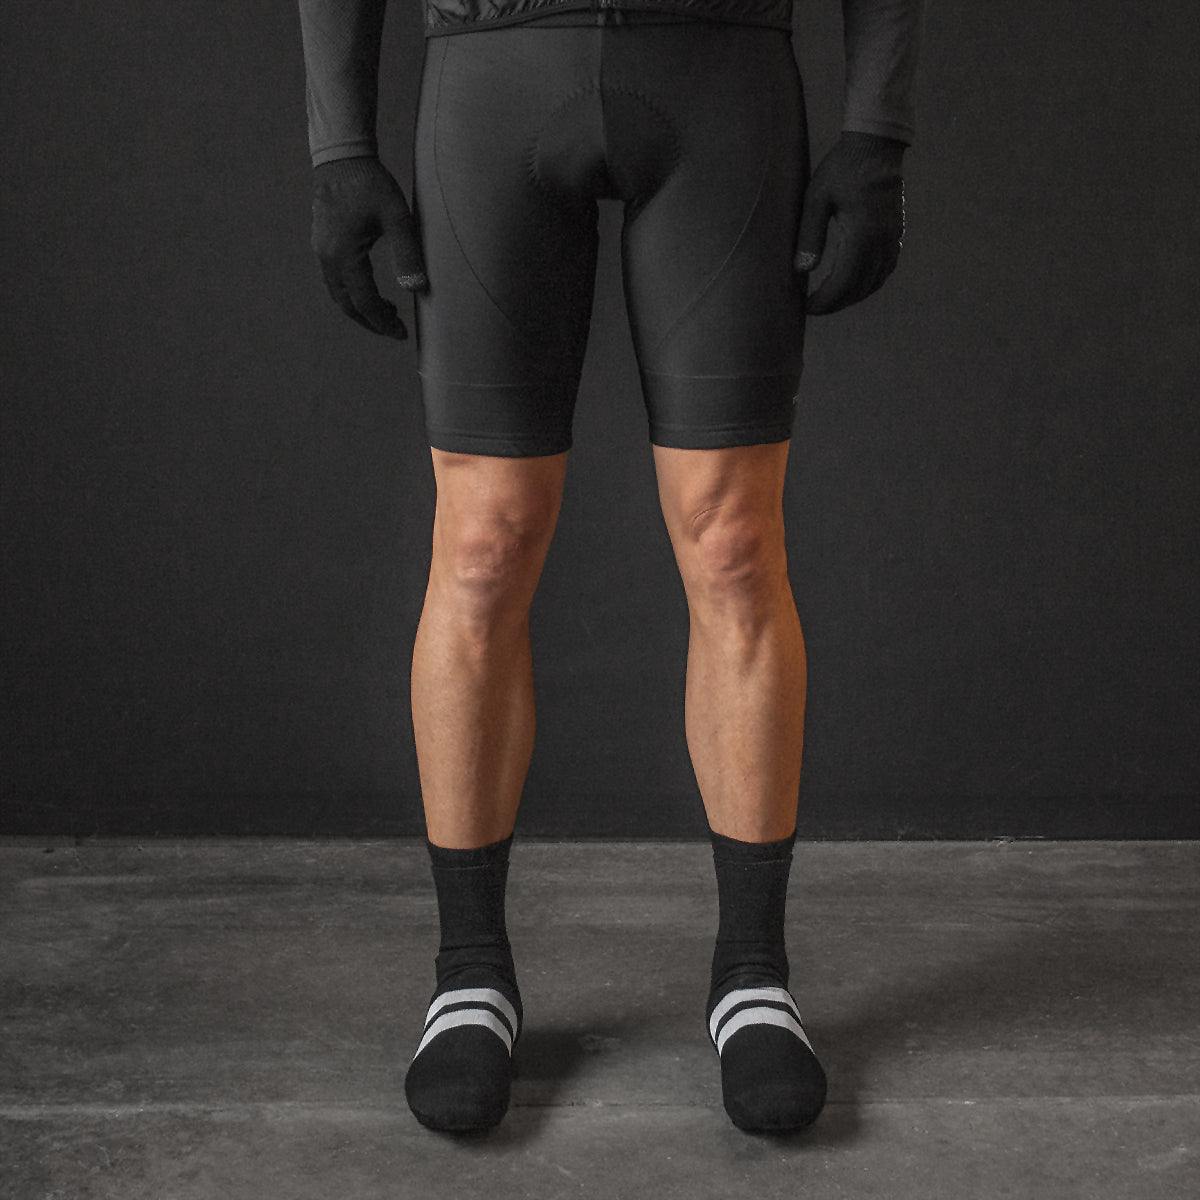 Black Thermal Bib Short